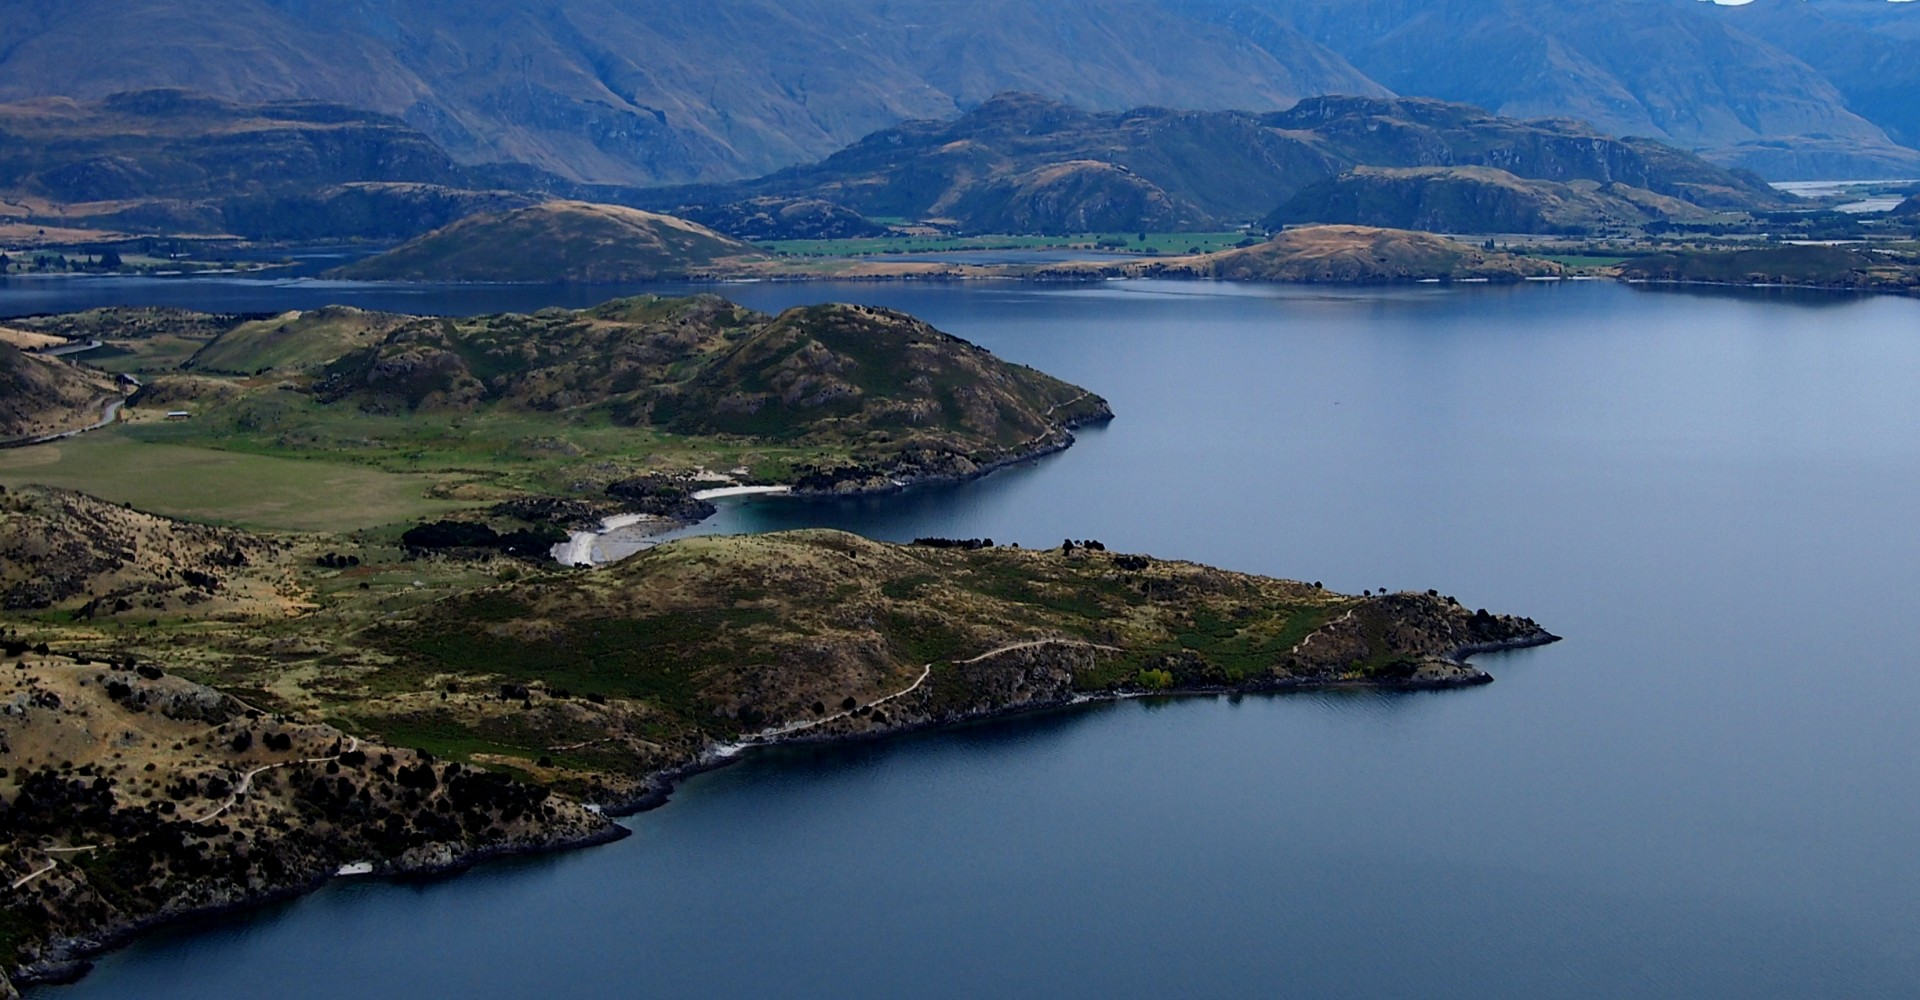 Wanaka, New Zealand in 35 Photos